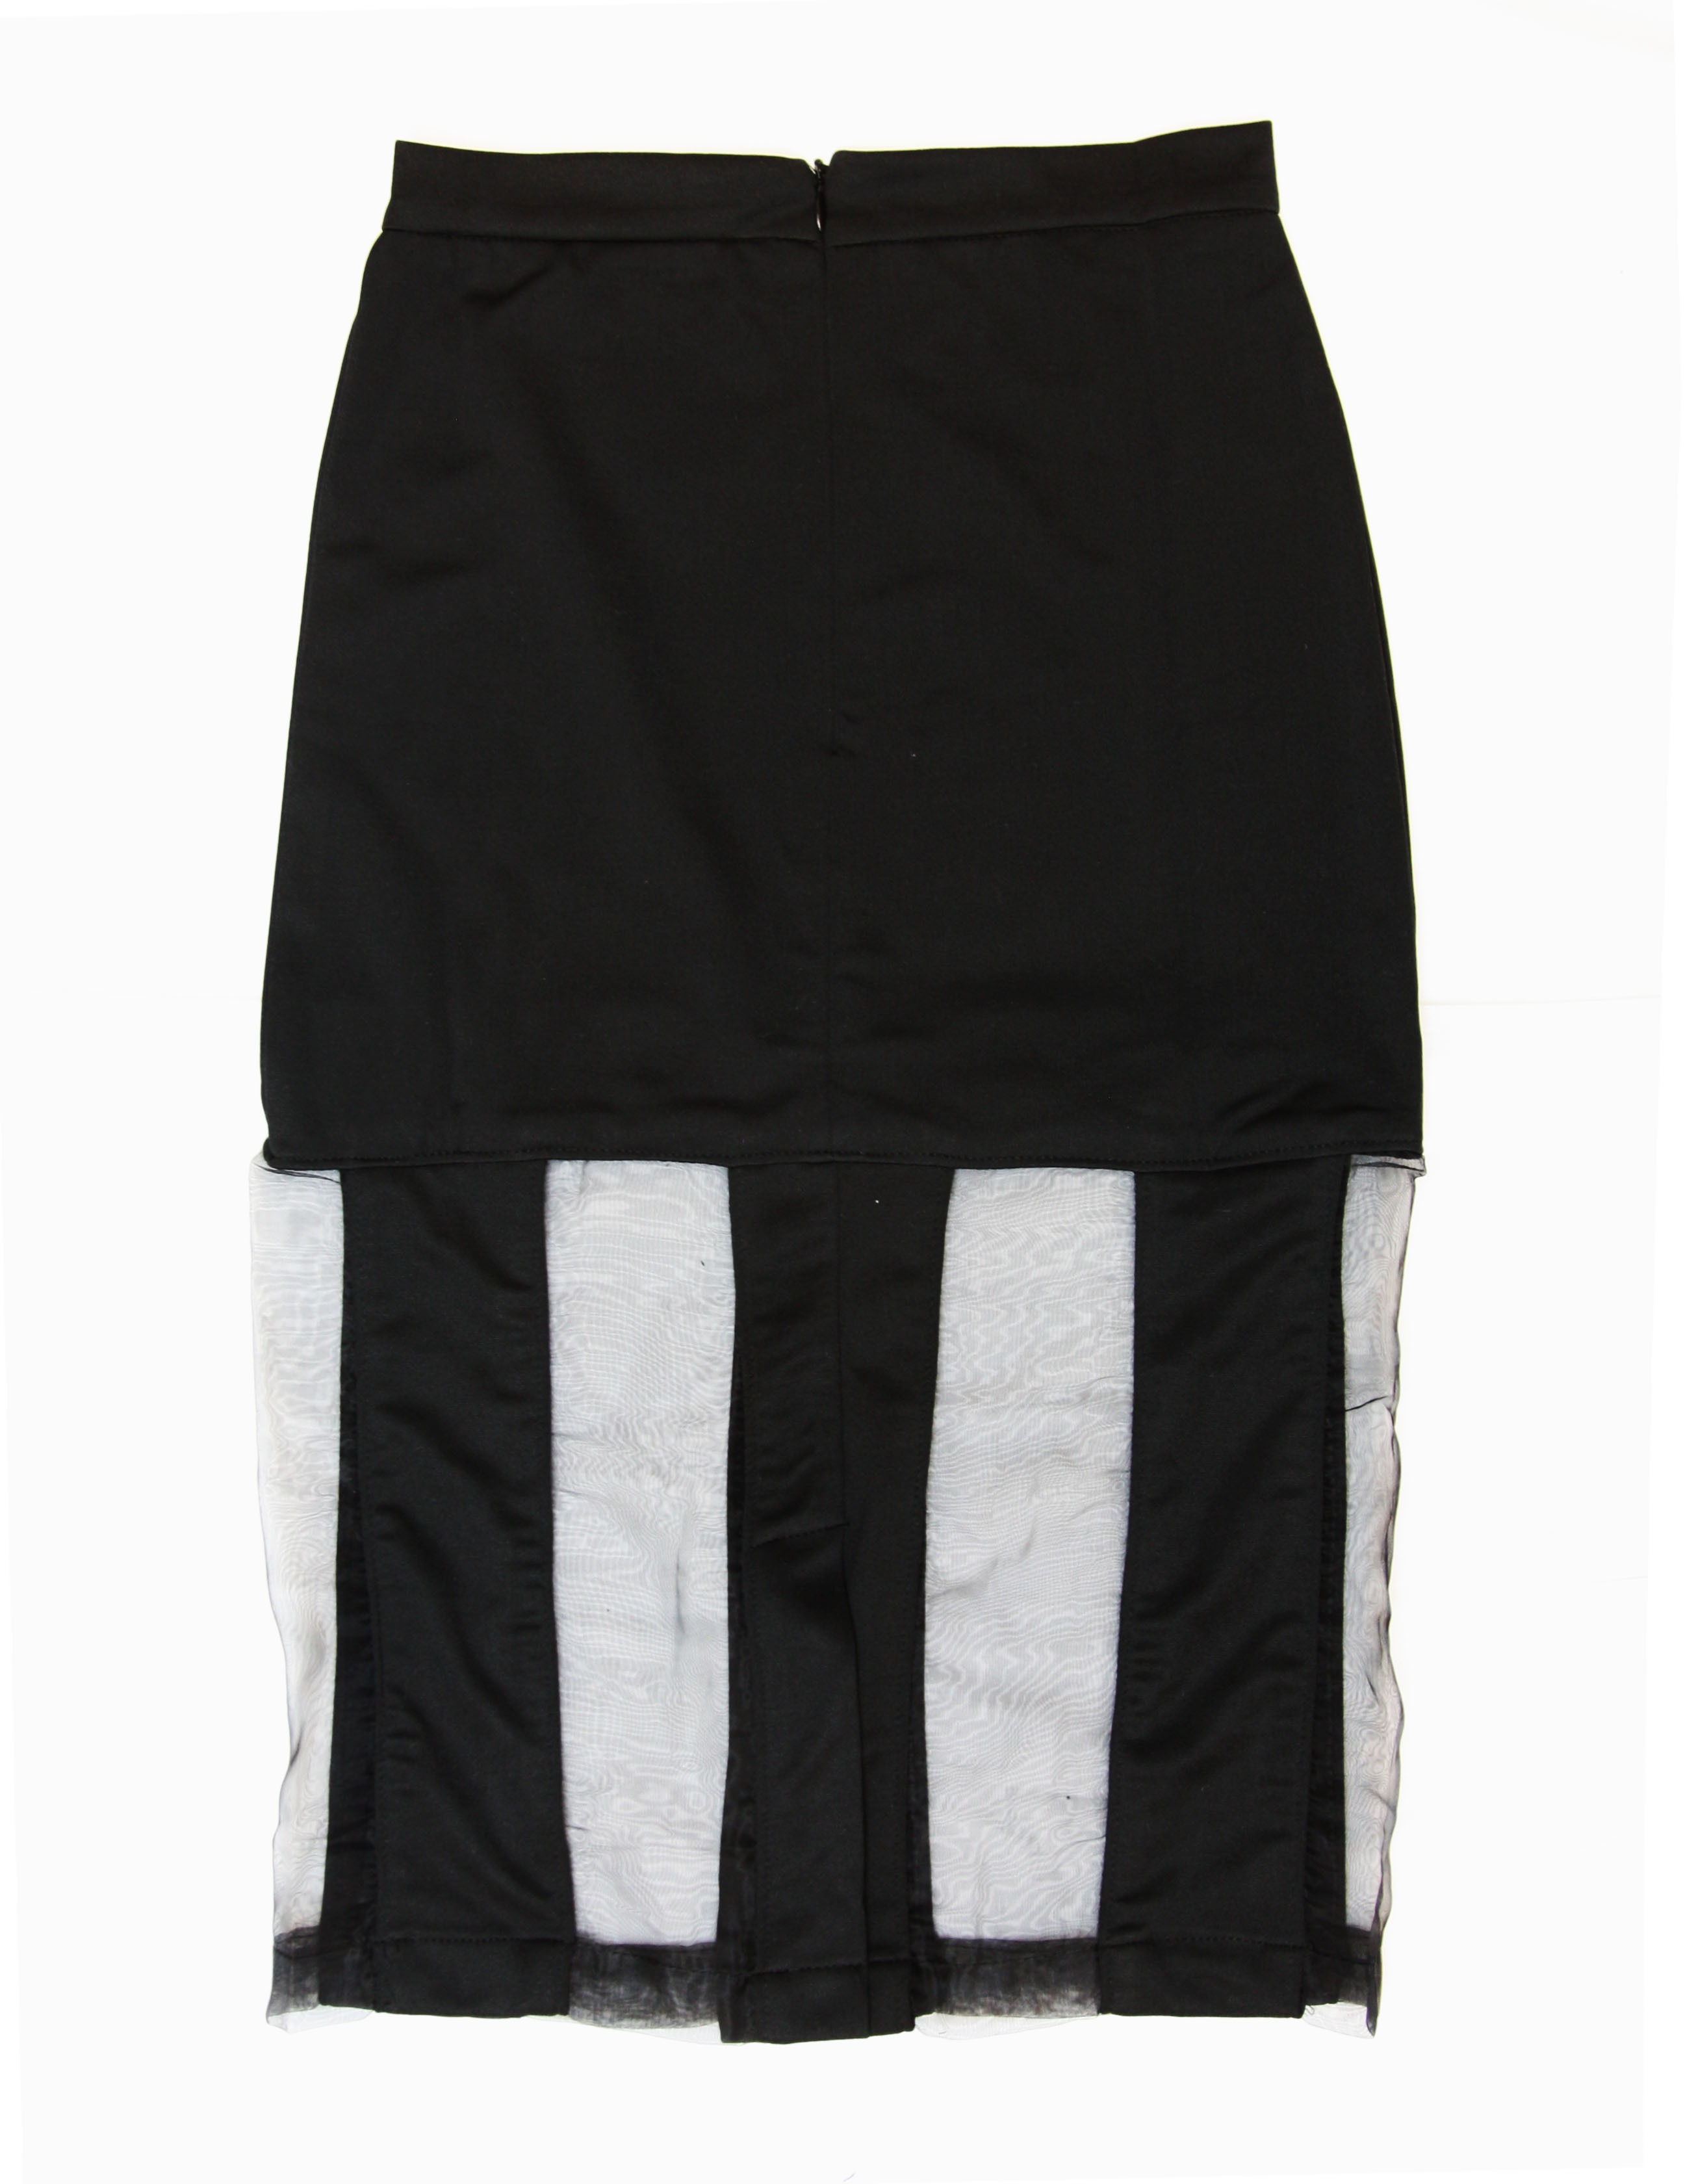 Drop it Low Skirt - Bottoms - Clothing